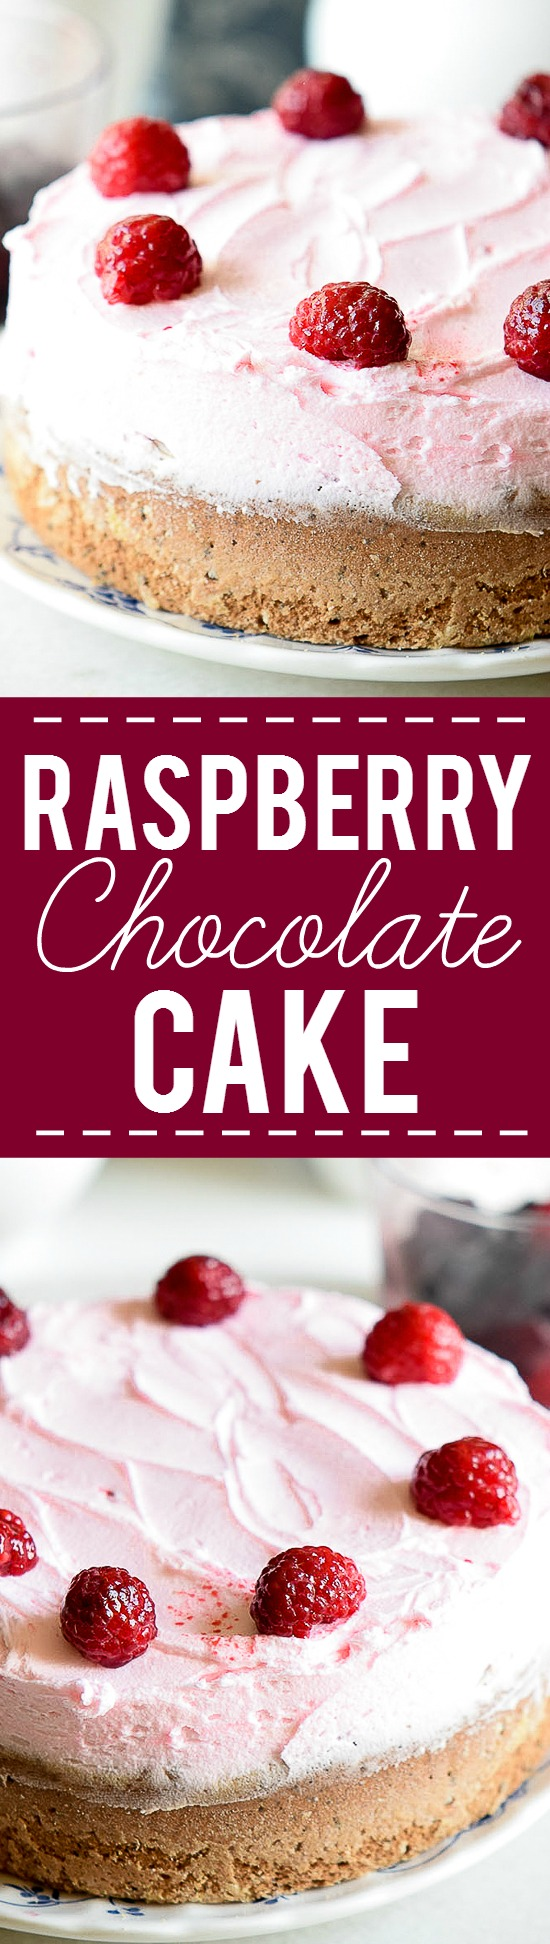 Raspberry Chocolate Cake recipe -Rich, decadent chocolate cake with a creamy, tangy raspberry buttercream make this Raspberry Chocolate Cake recipe a heavenly, to-die-for dessert indulgence.